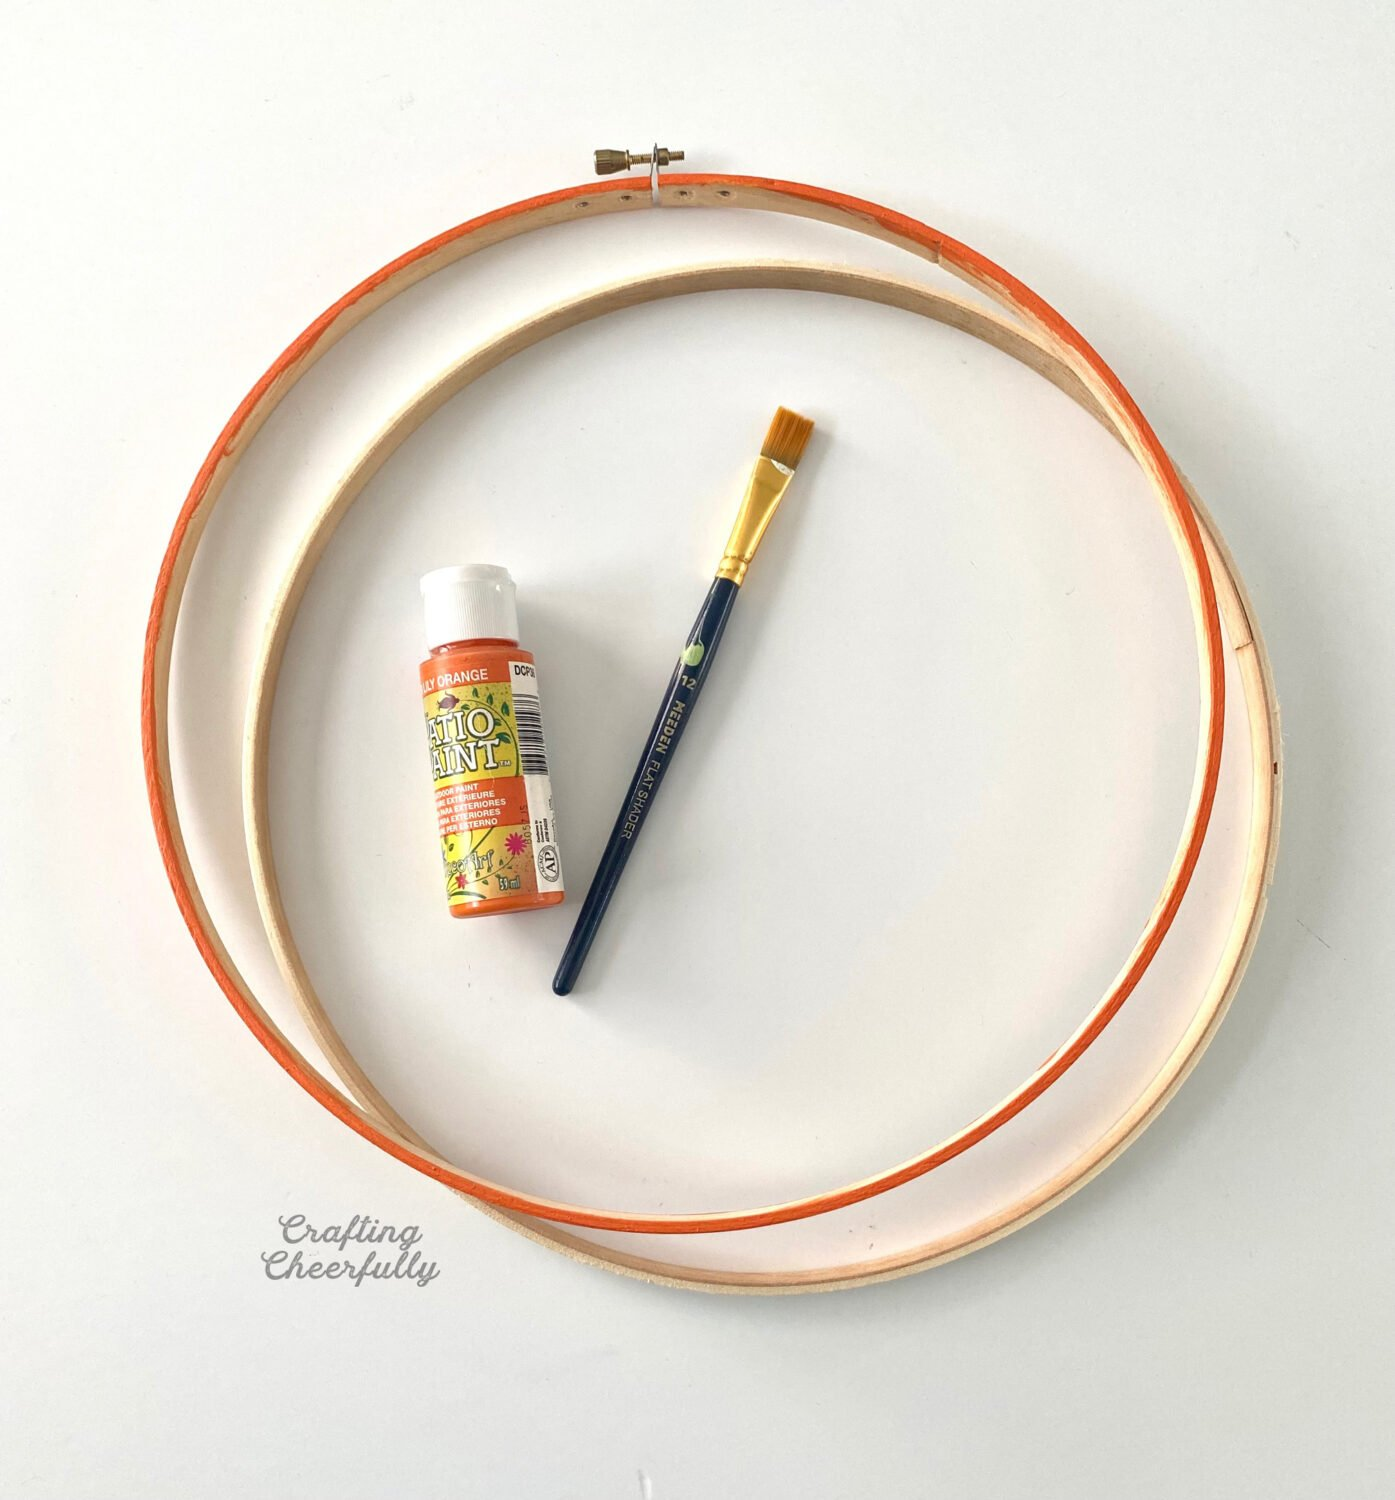 Embroidery hoop, with the top hoop painted orange, lay on a table next to a tube of orange paint and a paintbrush.